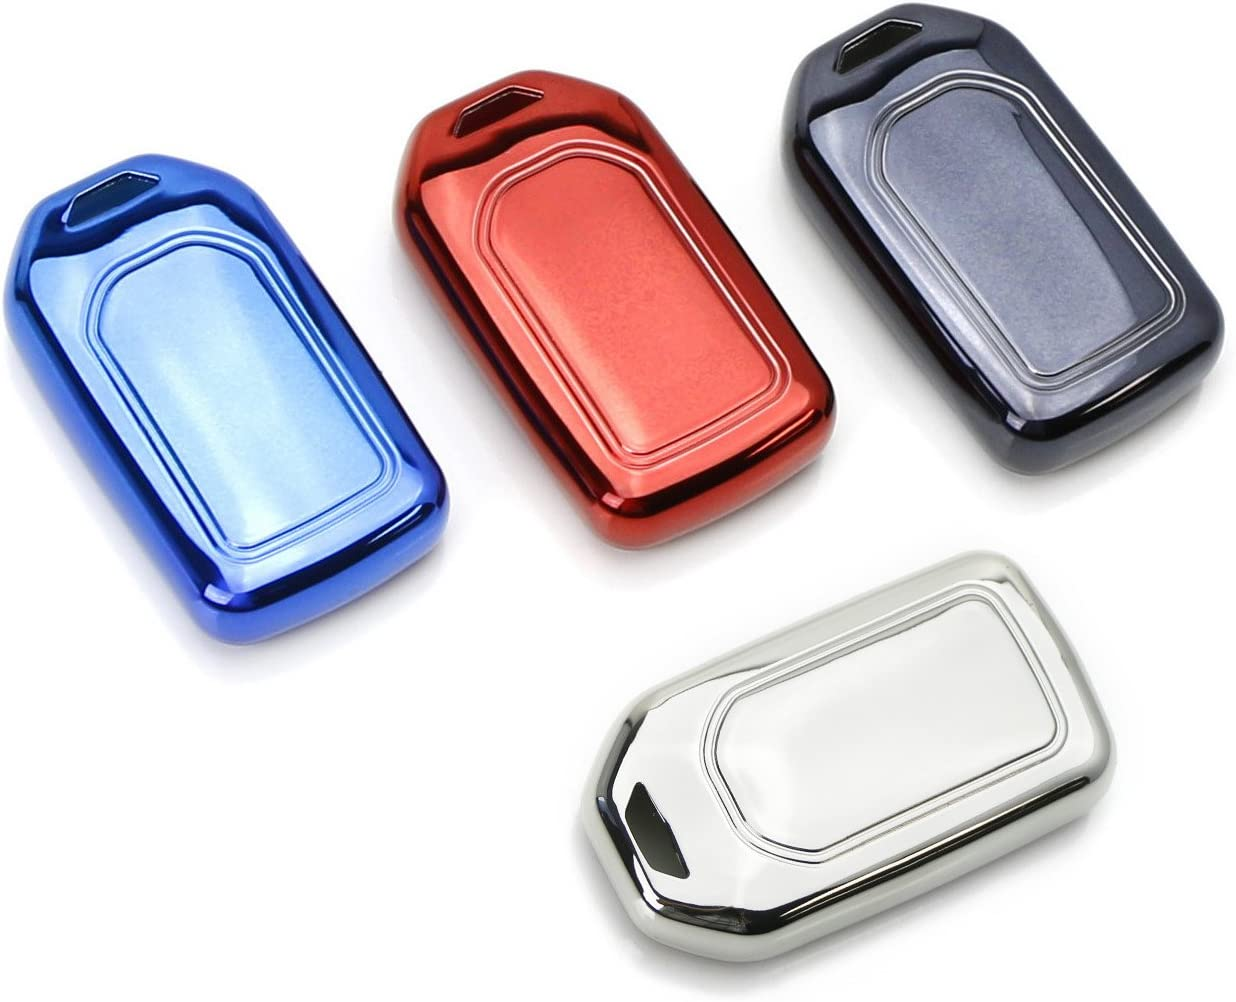 iJDMTOY Chrome Finish Blue TPU Key Fob Protective Cover Case For Honda Accord Civic Crosstour HRV FIT Odyssey Ridgeline etc